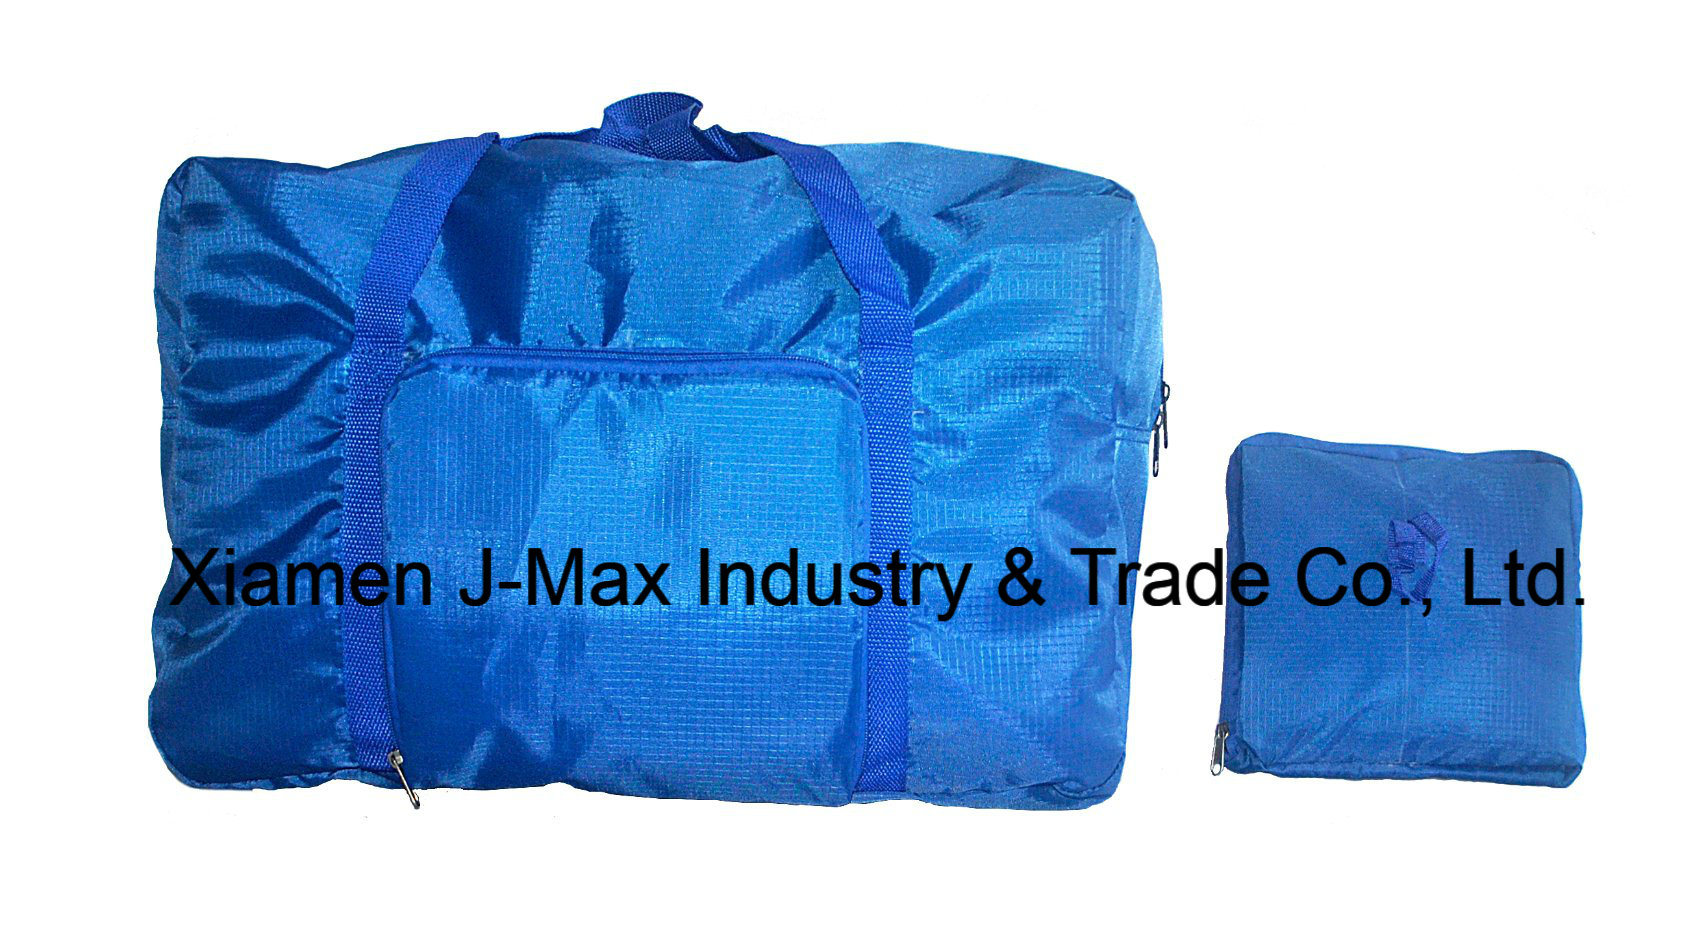 Foldable Duffel Bag for Travel Sports, Portablelightweigh Dustproofdurable, Multiplecolors, Menwomen